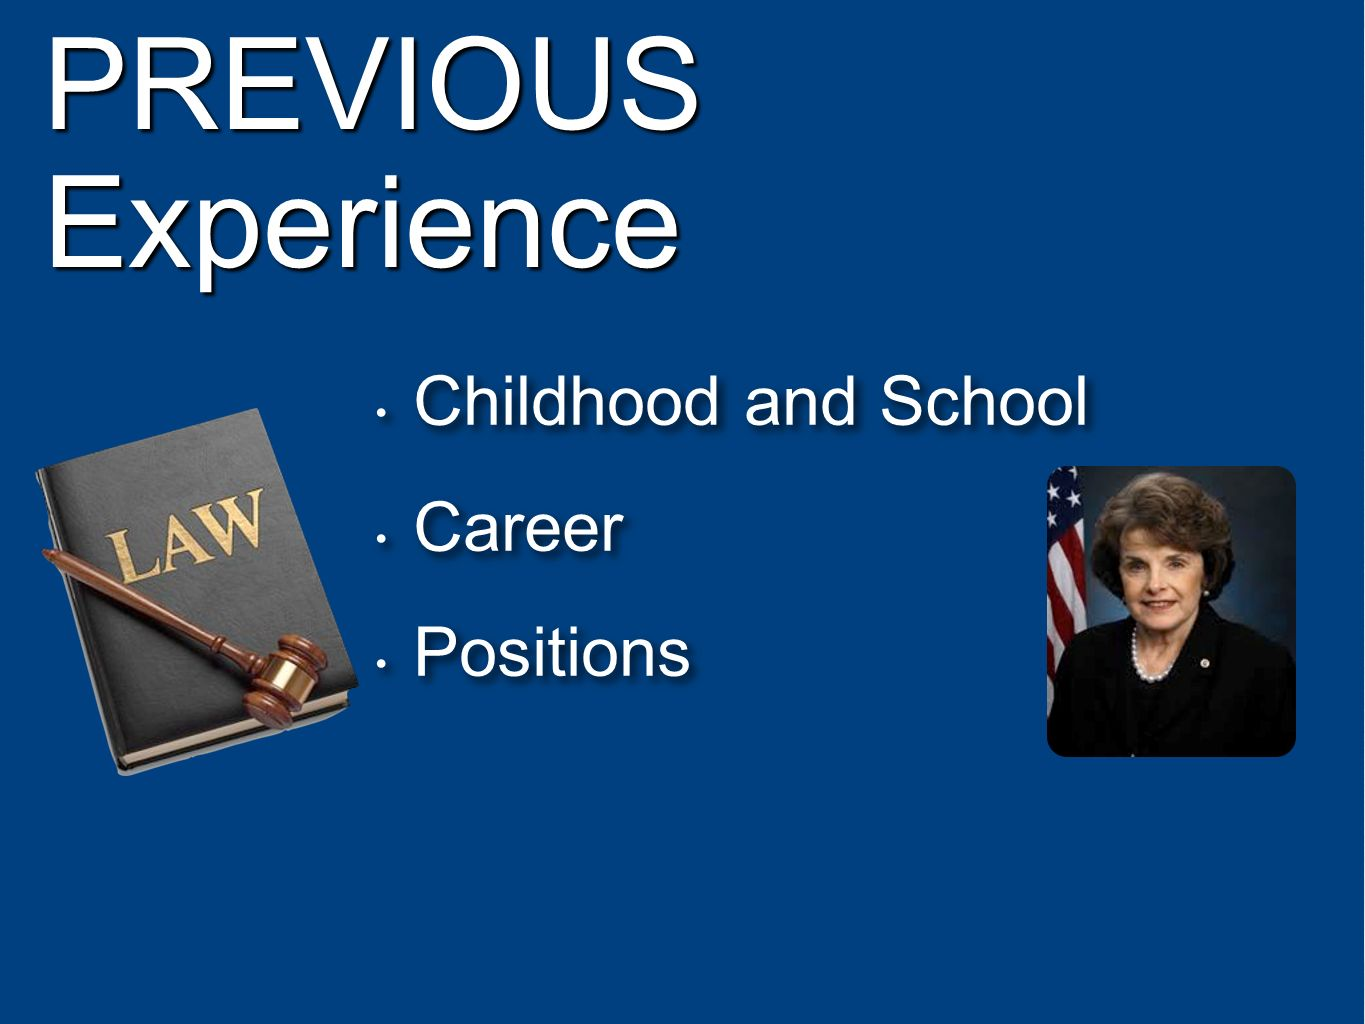 PREVIOUS Experience Childhood and School Career Positions Childhood and School Career Positions